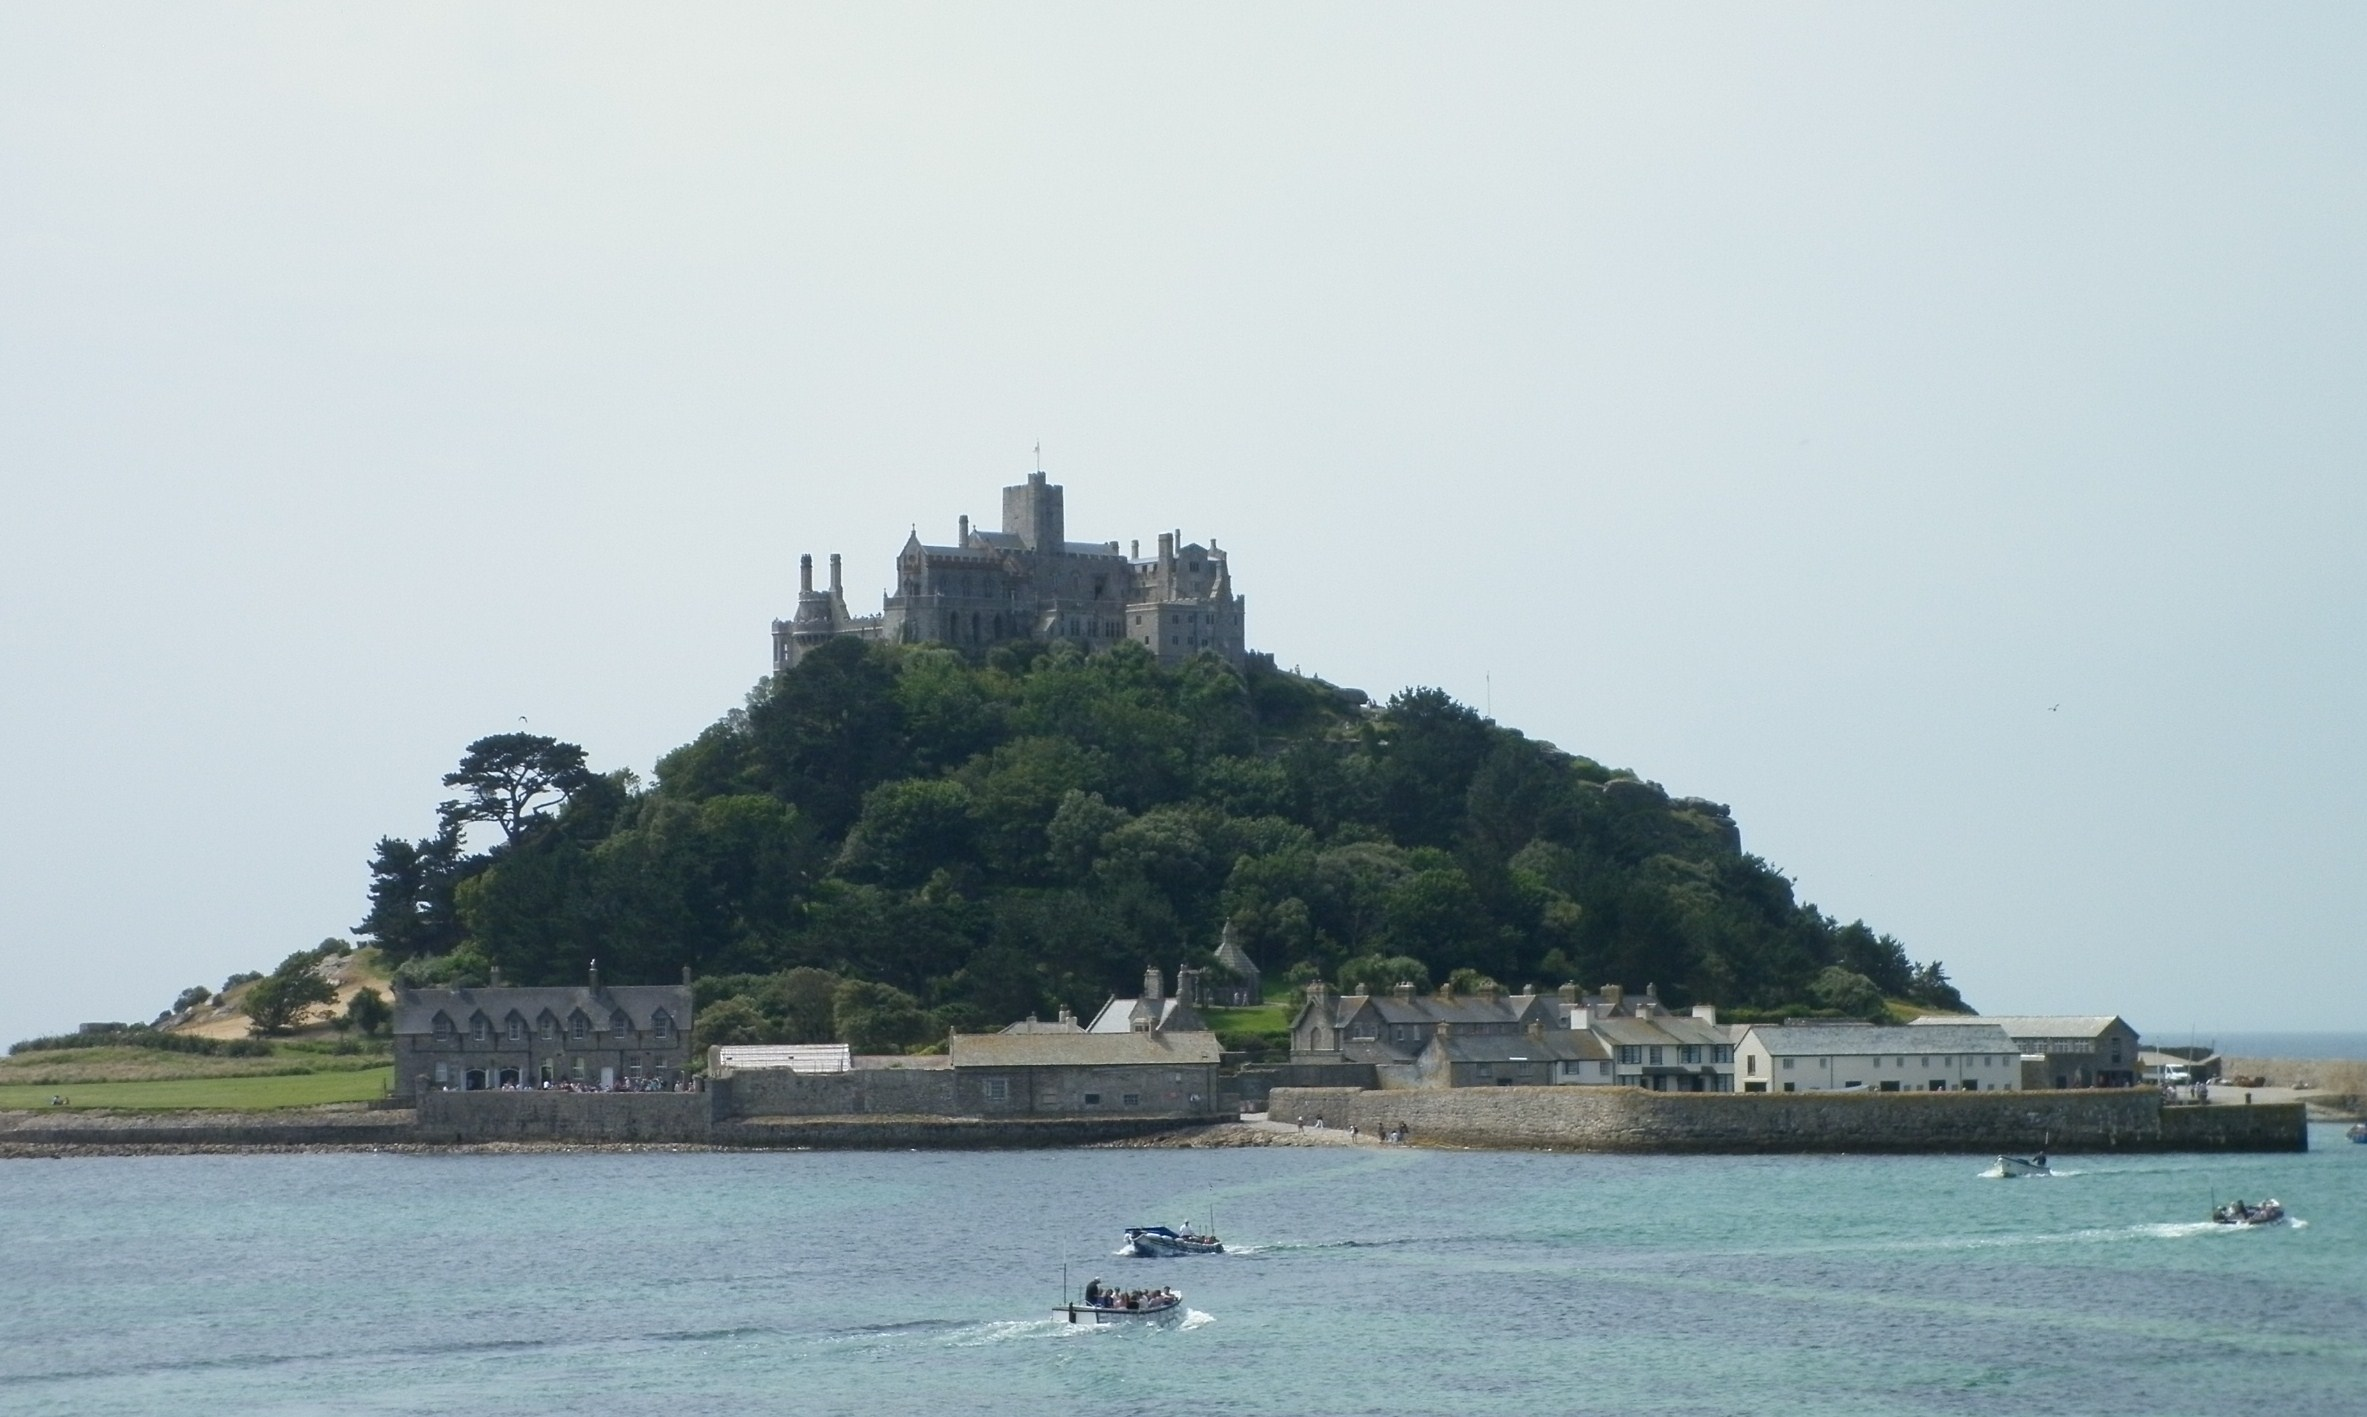 The tidal island of St Michael's Mount